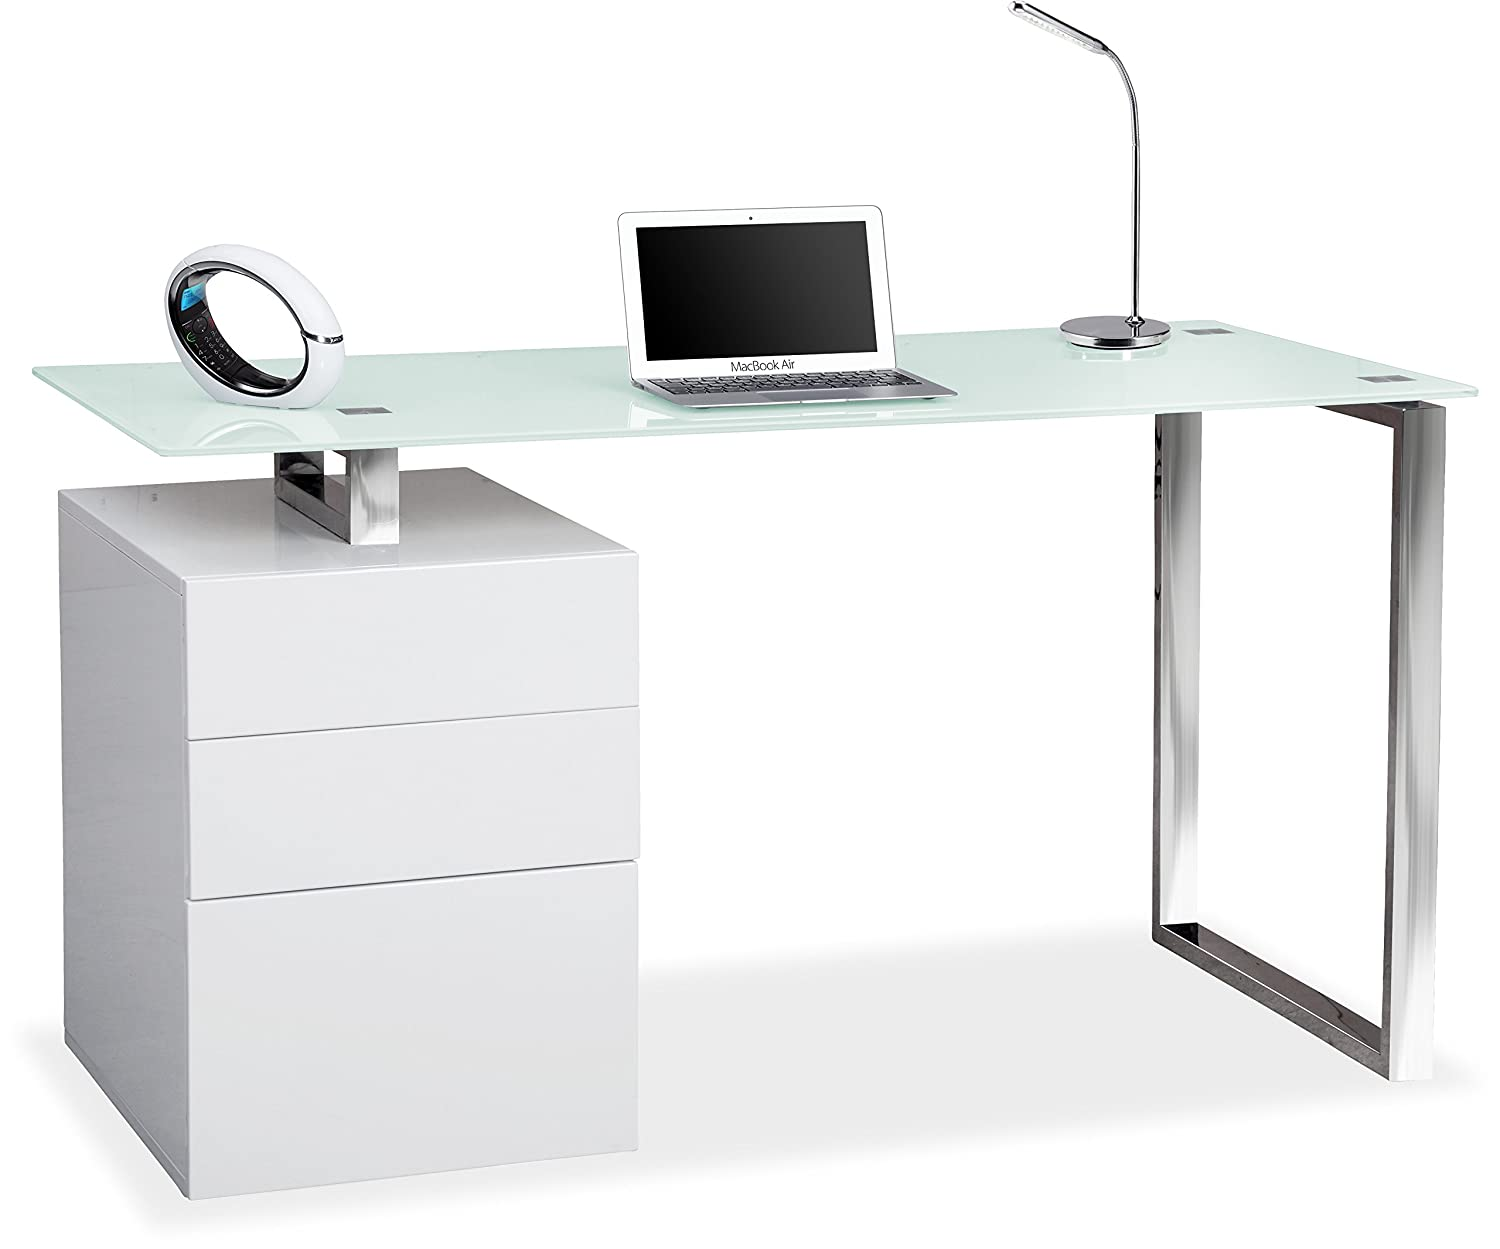 home office desk white. Centurion Supports CALISTA Gloss White With Brushed Steel Legs 3-Drawer Contemporary Home Office Computer Desk: Amazon.co.uk: Kitchen \u0026 Desk